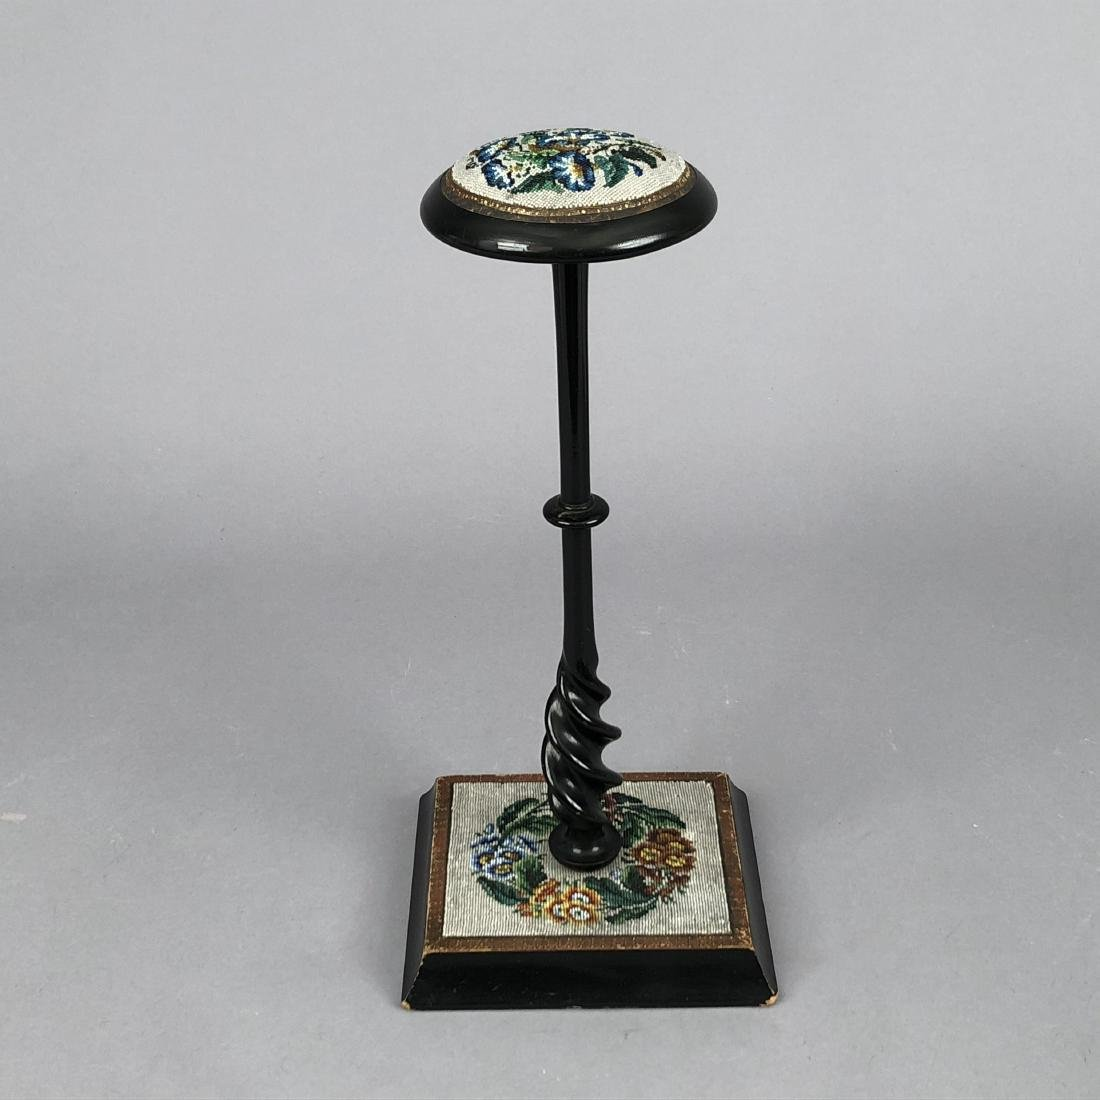 WOODEN HAT STAND with BEADWORK, QUEENS AUCTION, 1908